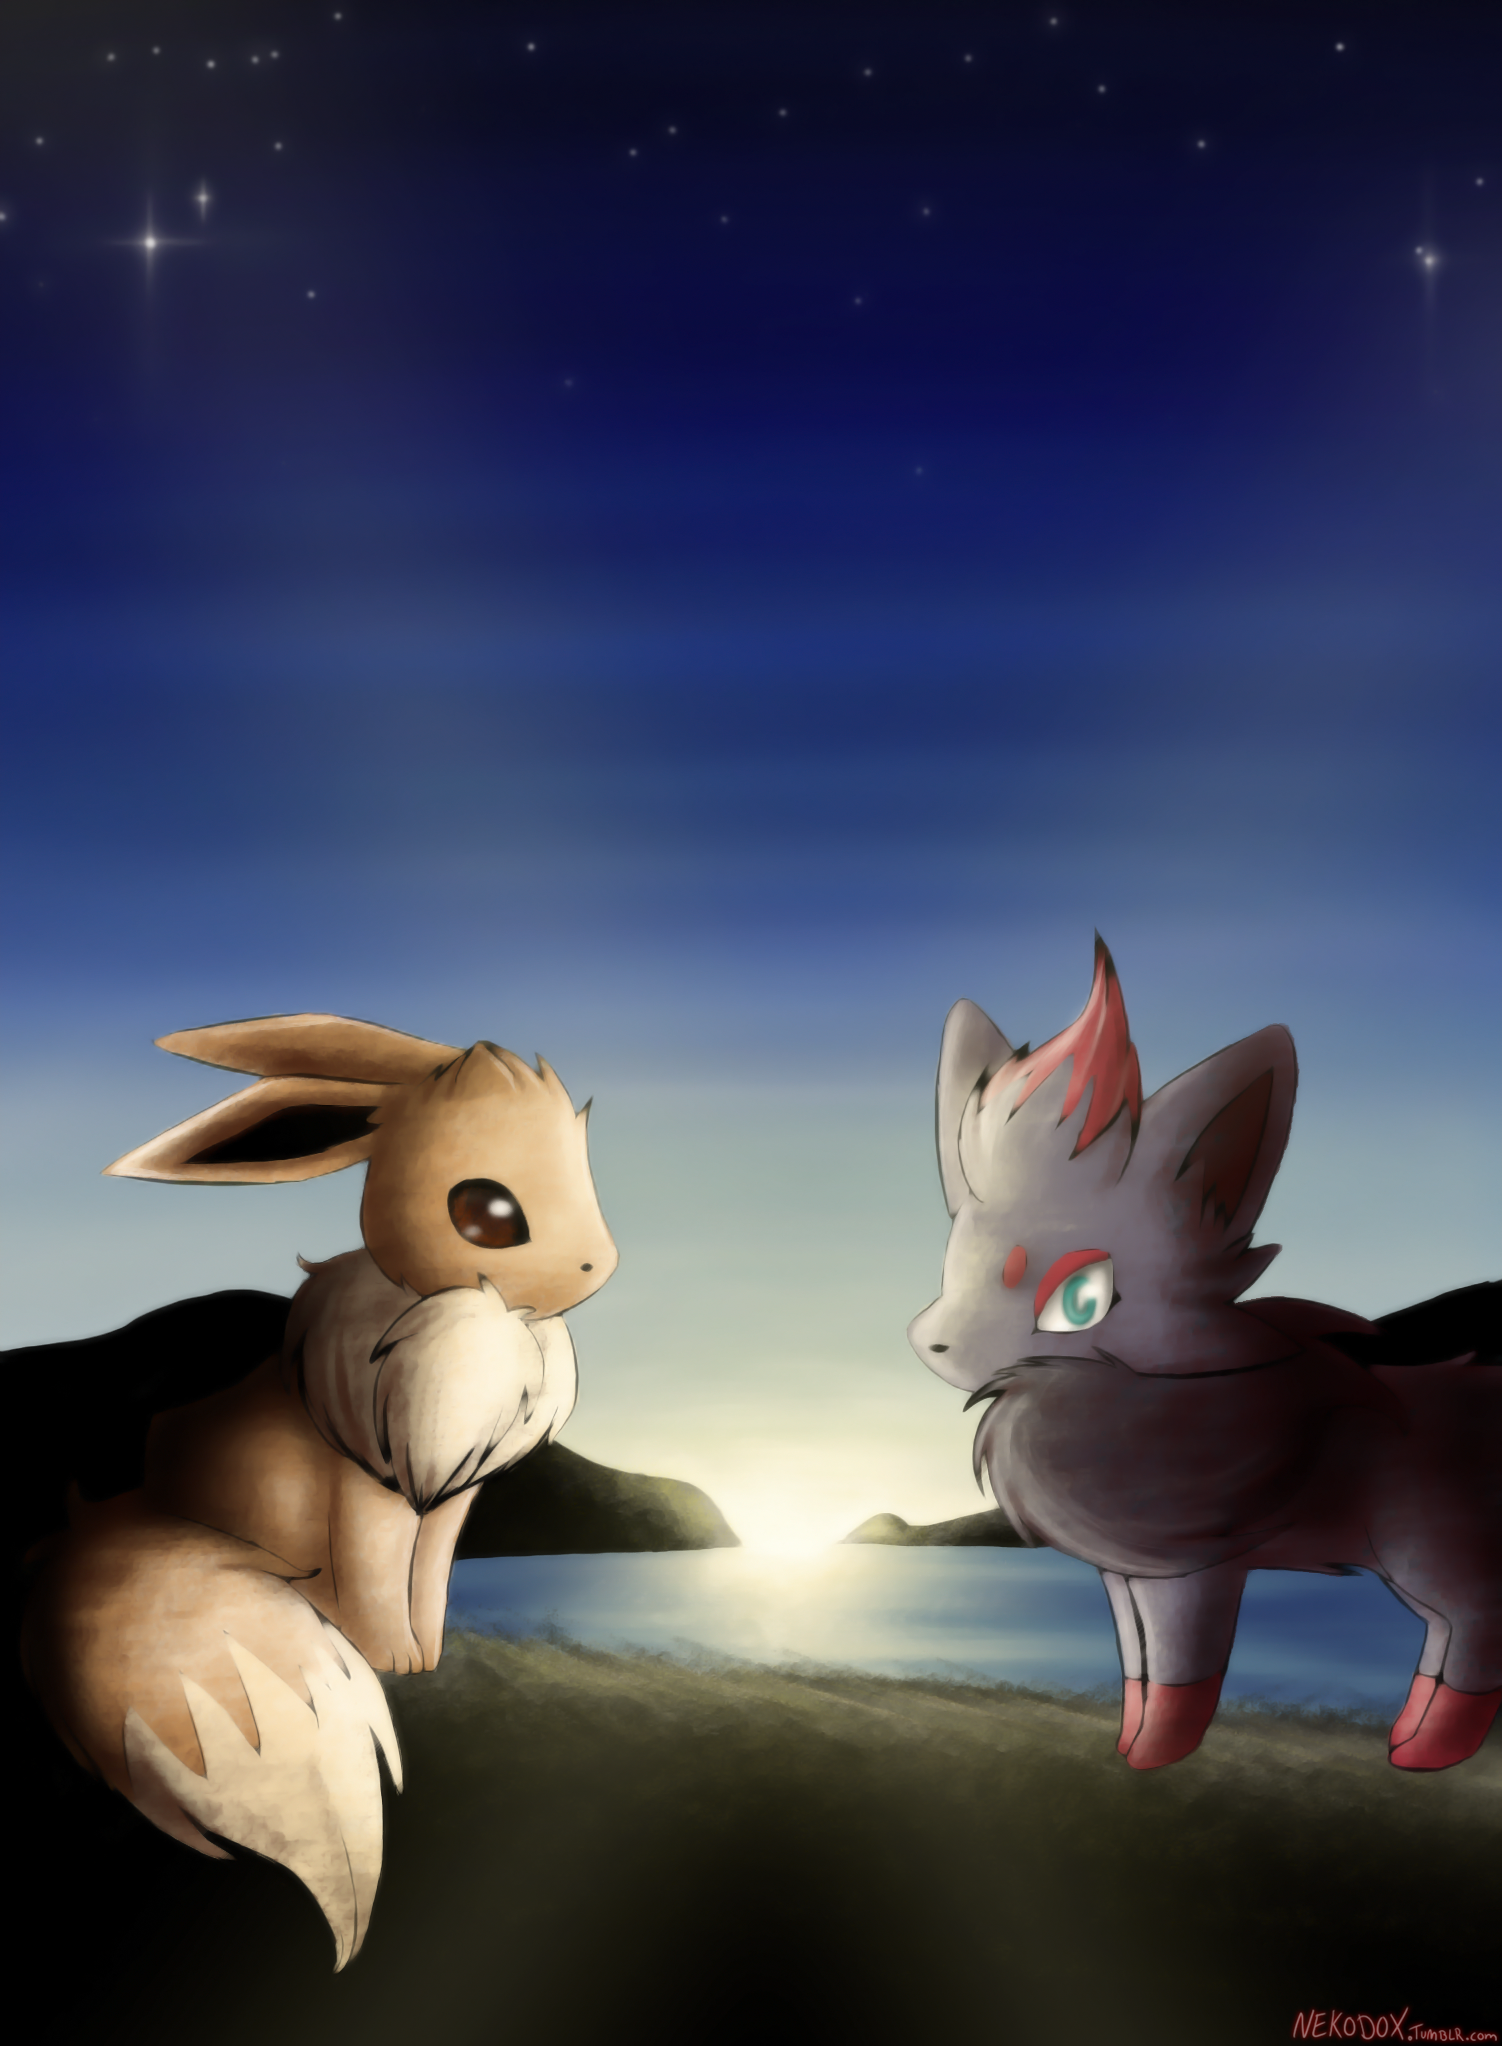 Eevee and Zorua by Nekodox